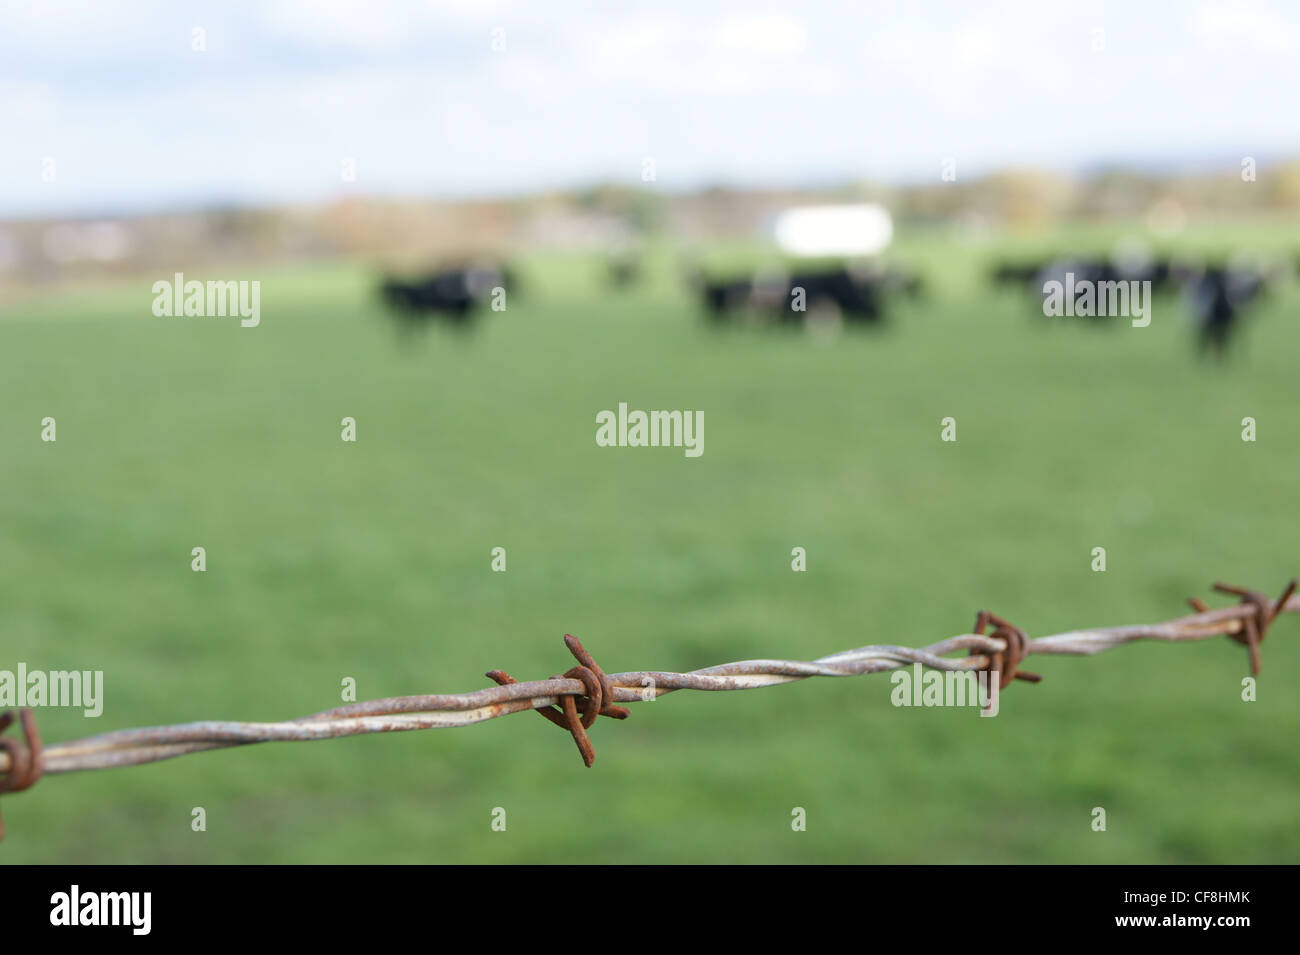 Selective focus view of rusty barbed wire with cows in the background. Stock Photo